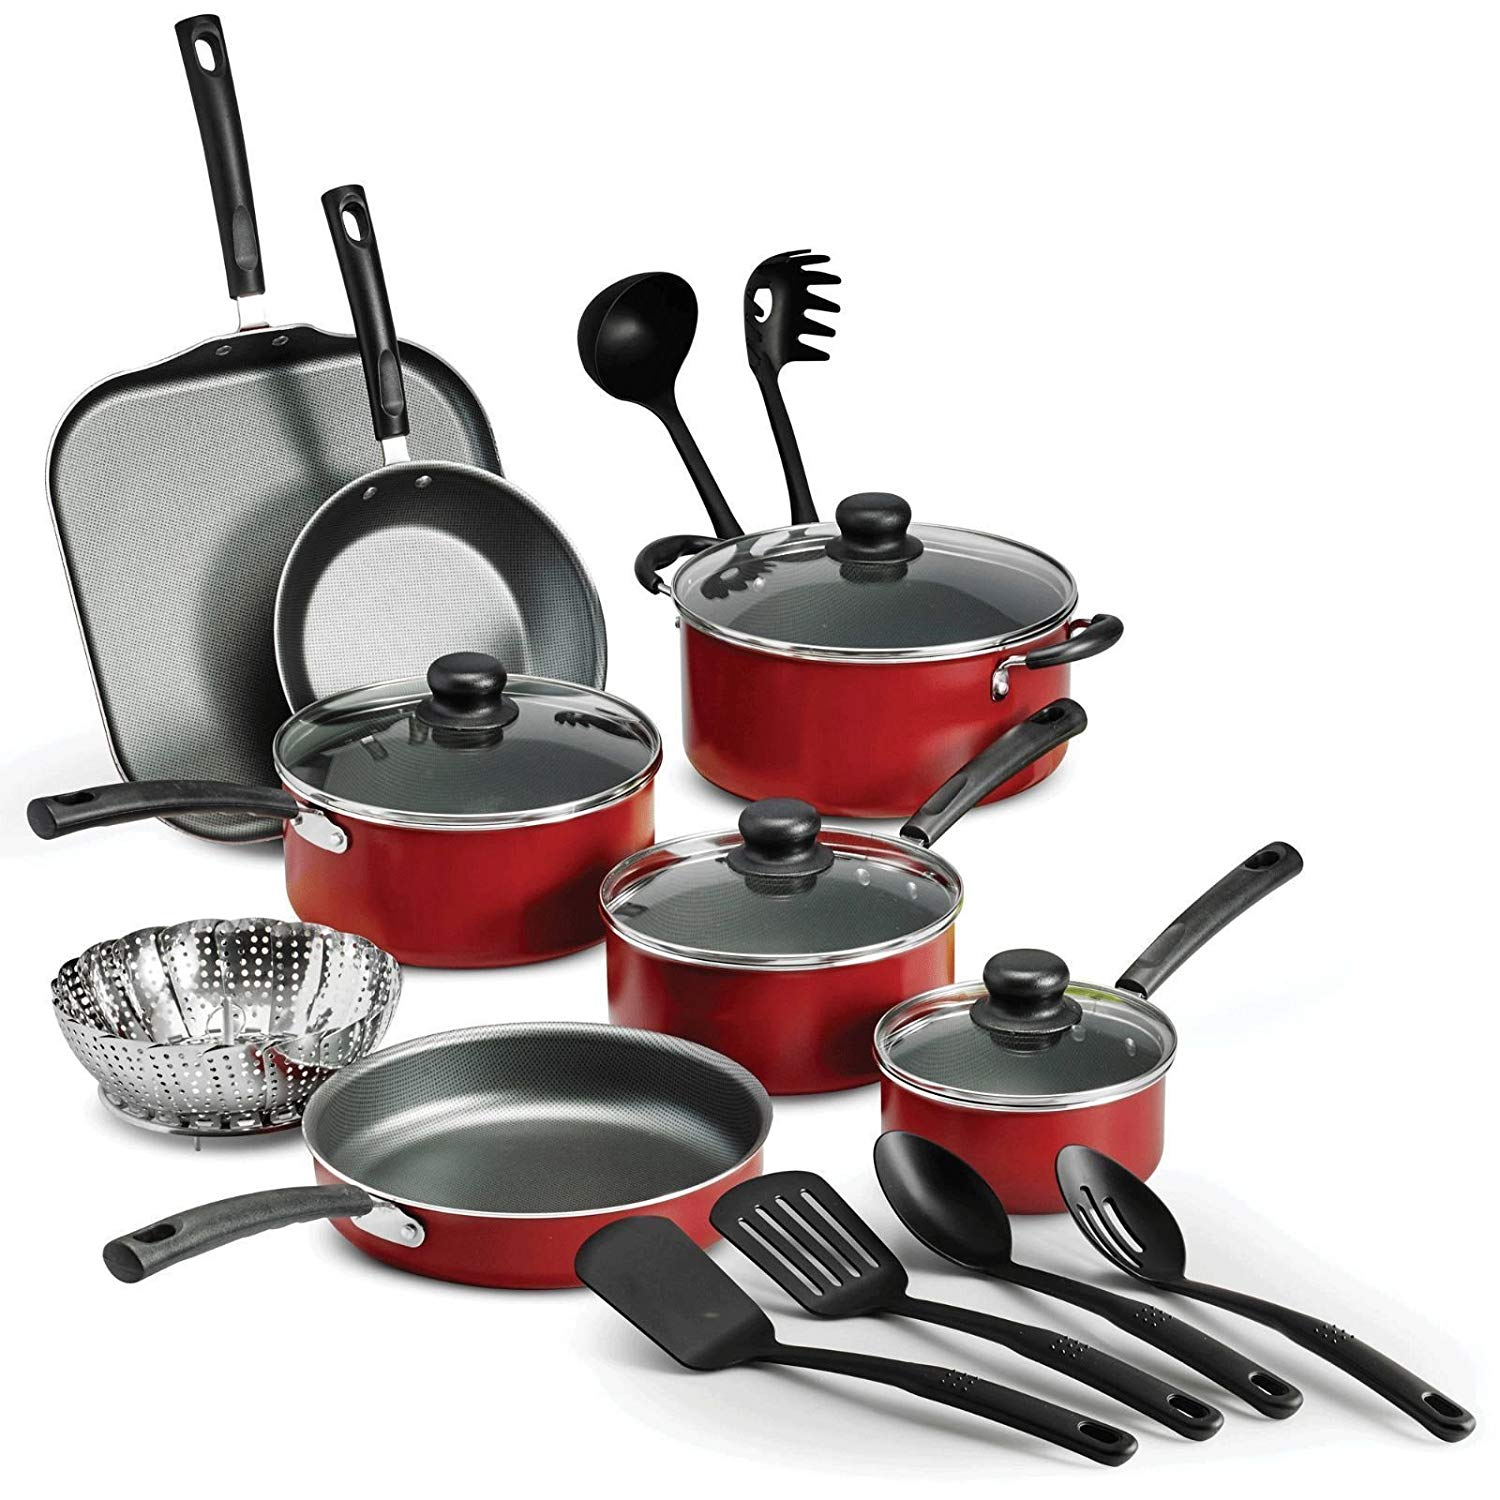 Double Nonstick Coating Kitchen Pots and Pan Set 13-Piece with Red Handle  Professional for Home Restaurant Finnhomy Super Value Hard-Anodized  Aluminum Cookware Set Home & Kitchen Kitchen & Dining